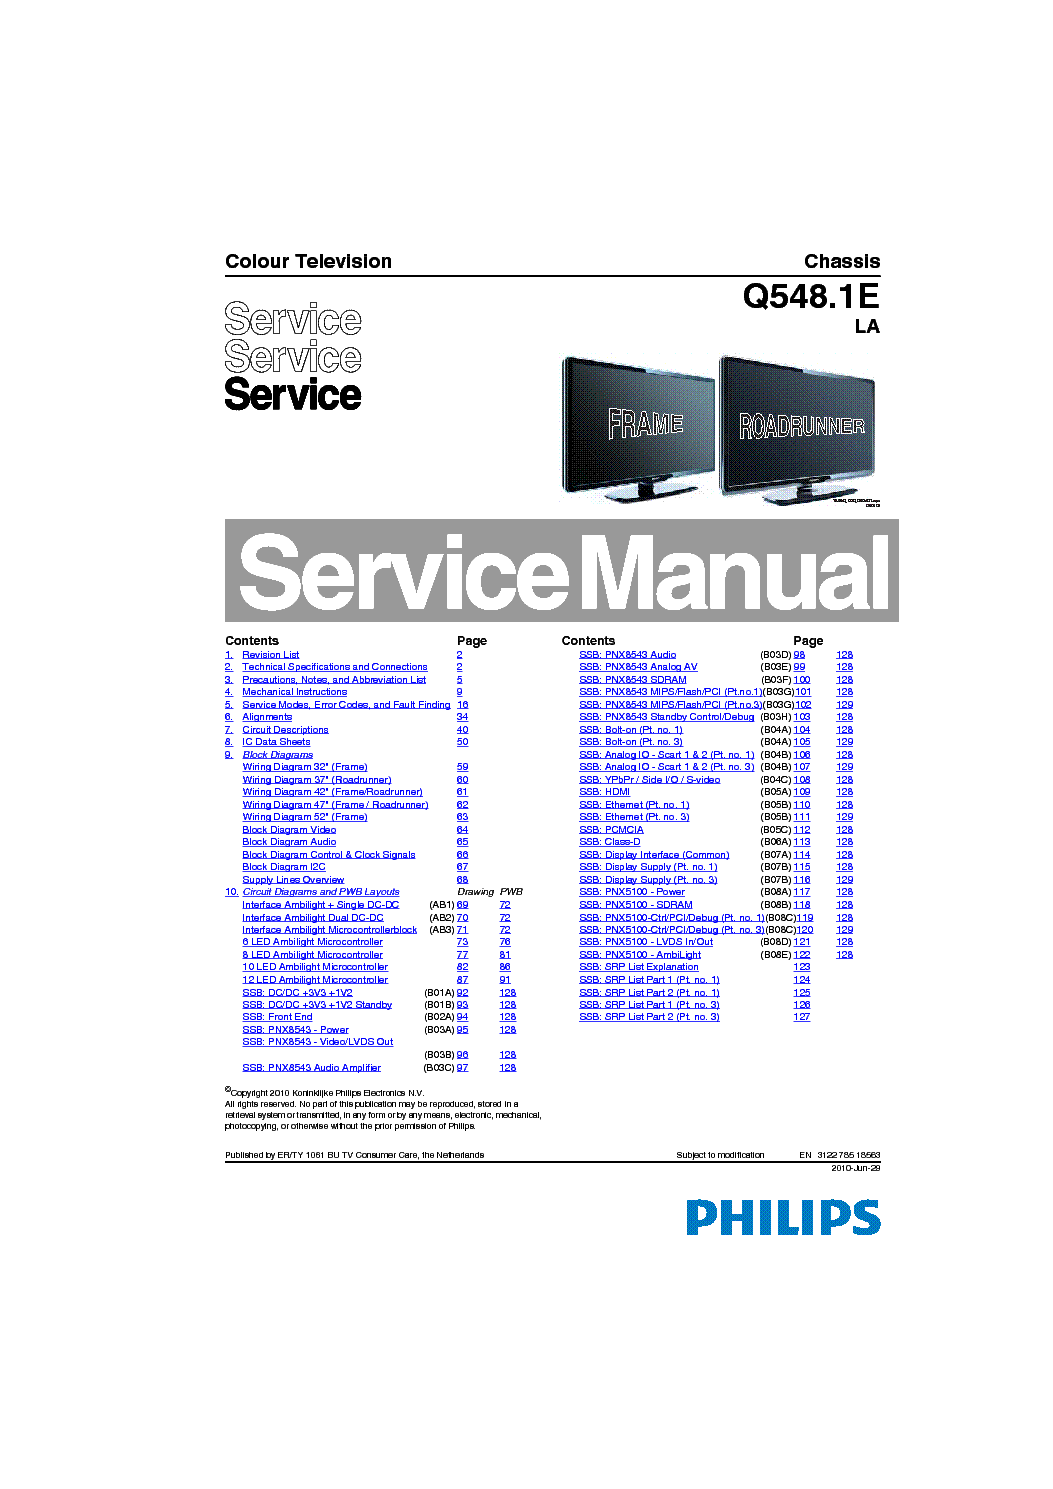 Philips 37pfl8404 Chassis Q548 1e La Sm Service Manual Download  Schematics  Eeprom  Repair Info